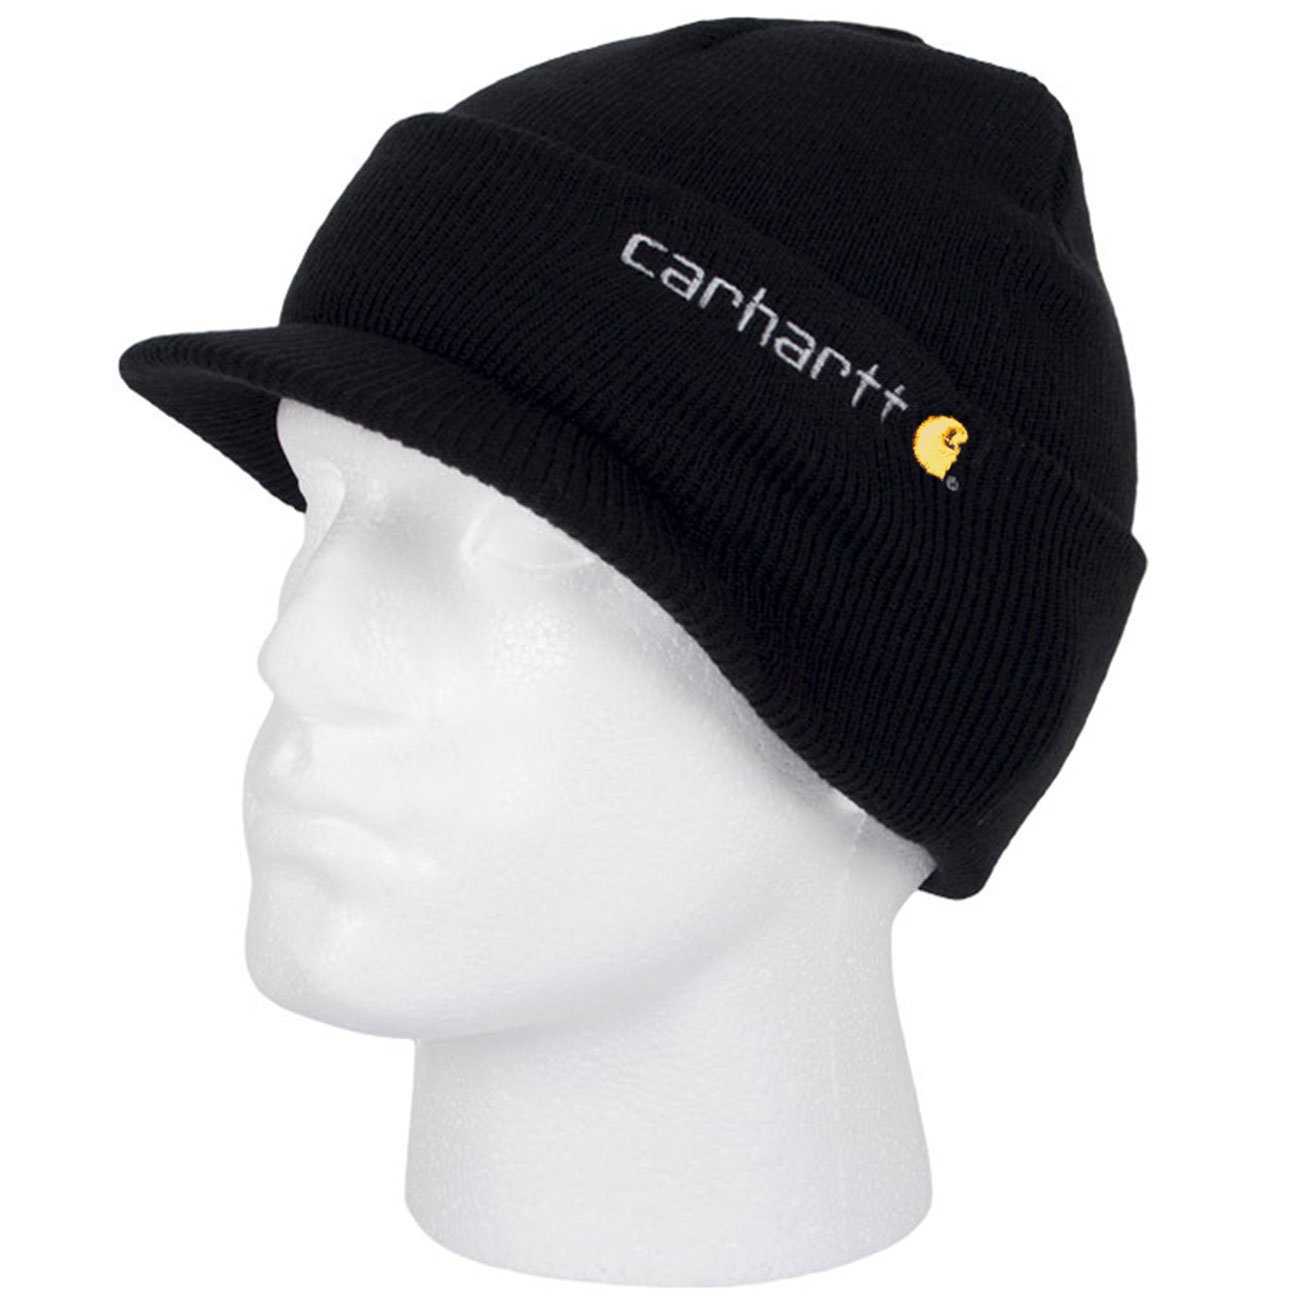 Carhartt Winter Hat with Visor - Black CHA164BLK Mens Beanie with peak Hat  CHA164BLK-Universal  Amazon.co.uk  Clothing f4195bb65cb